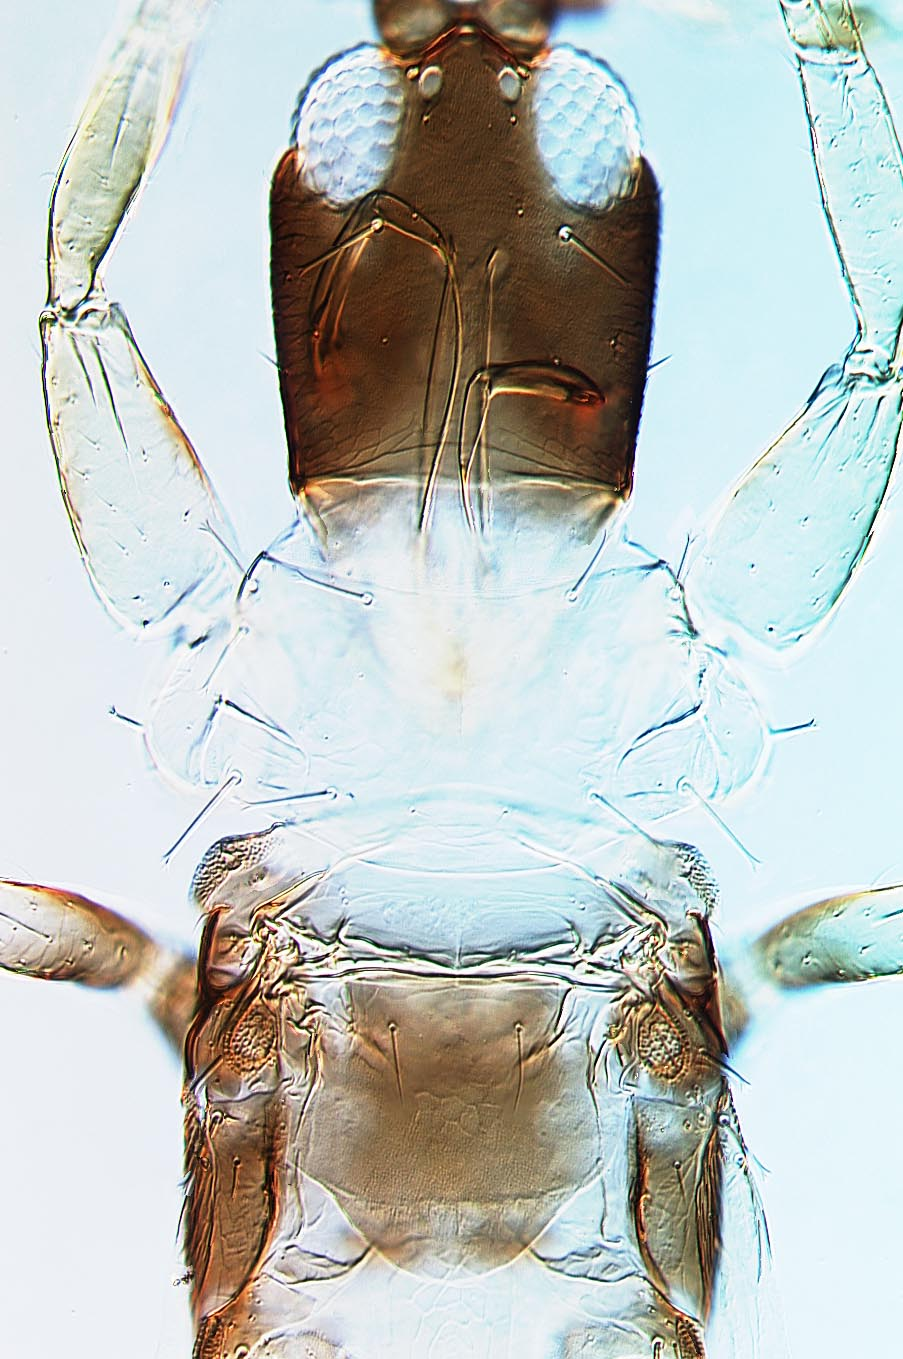 Adraneothrips brasiliensis